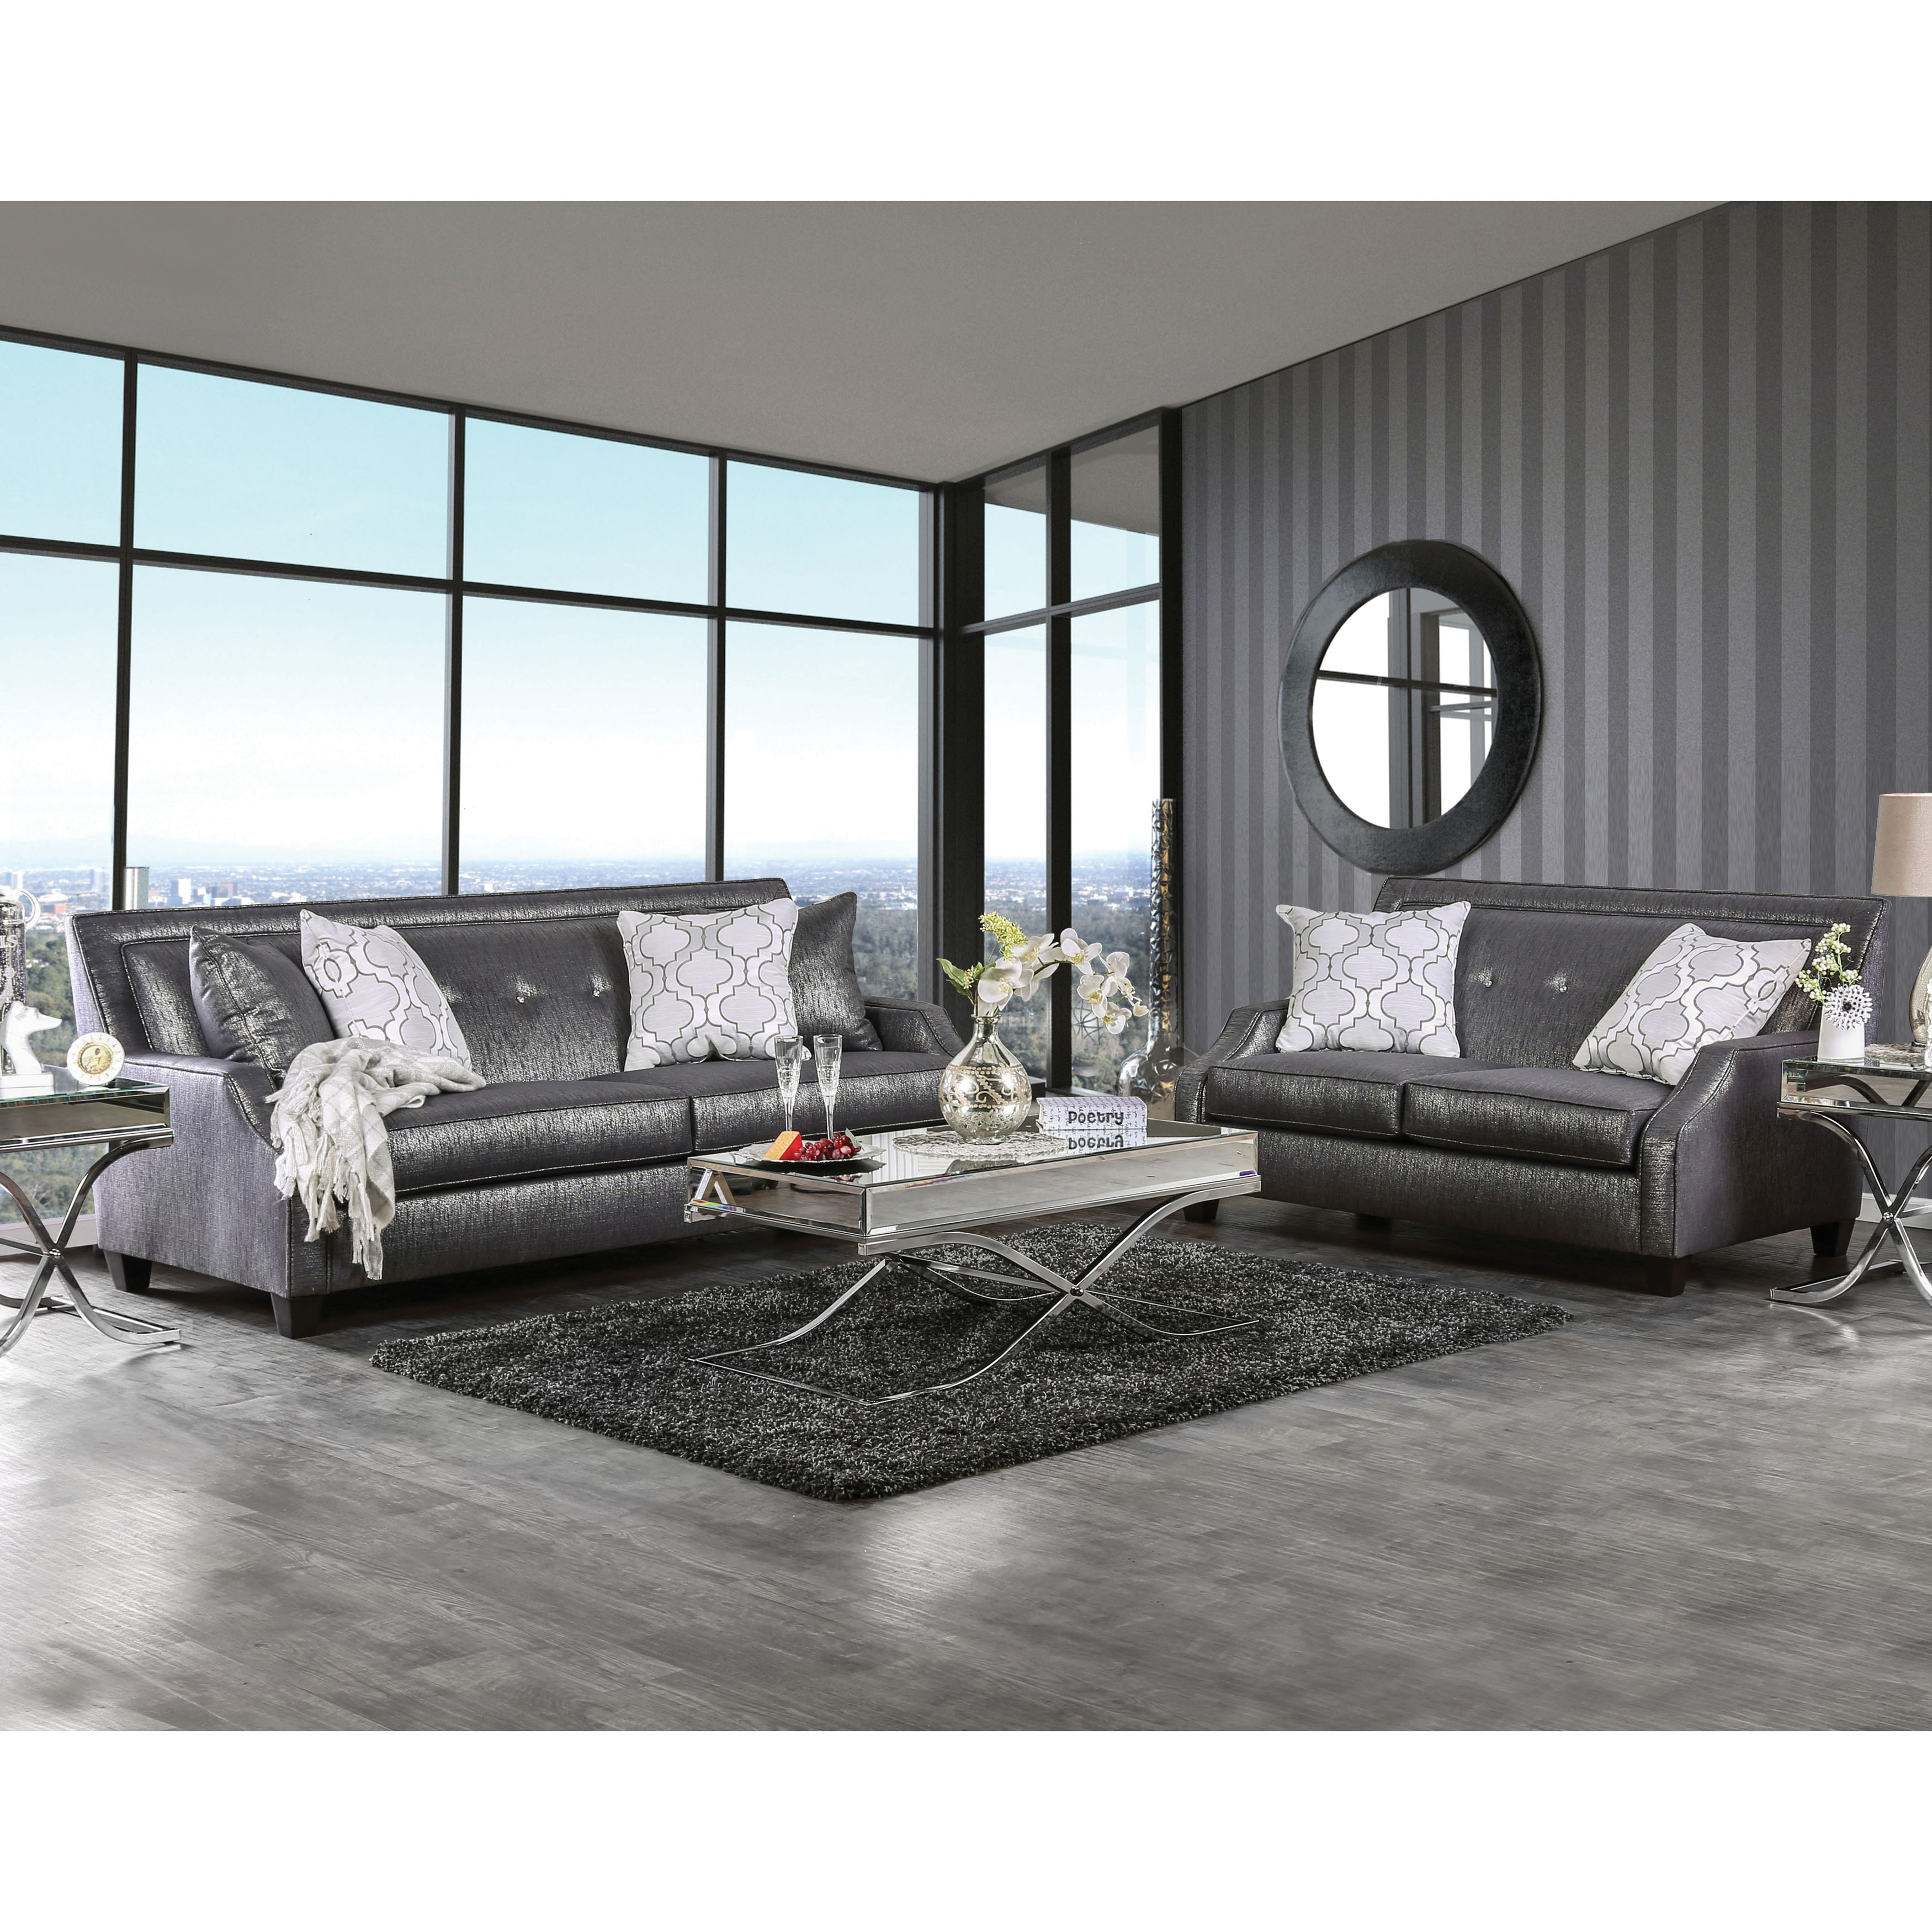 Shop Lorana Glam Crystal Tufted Shined Black Fabric Sofa By Furniture Of  America   Free Shipping Today   Overstock.com   14229074